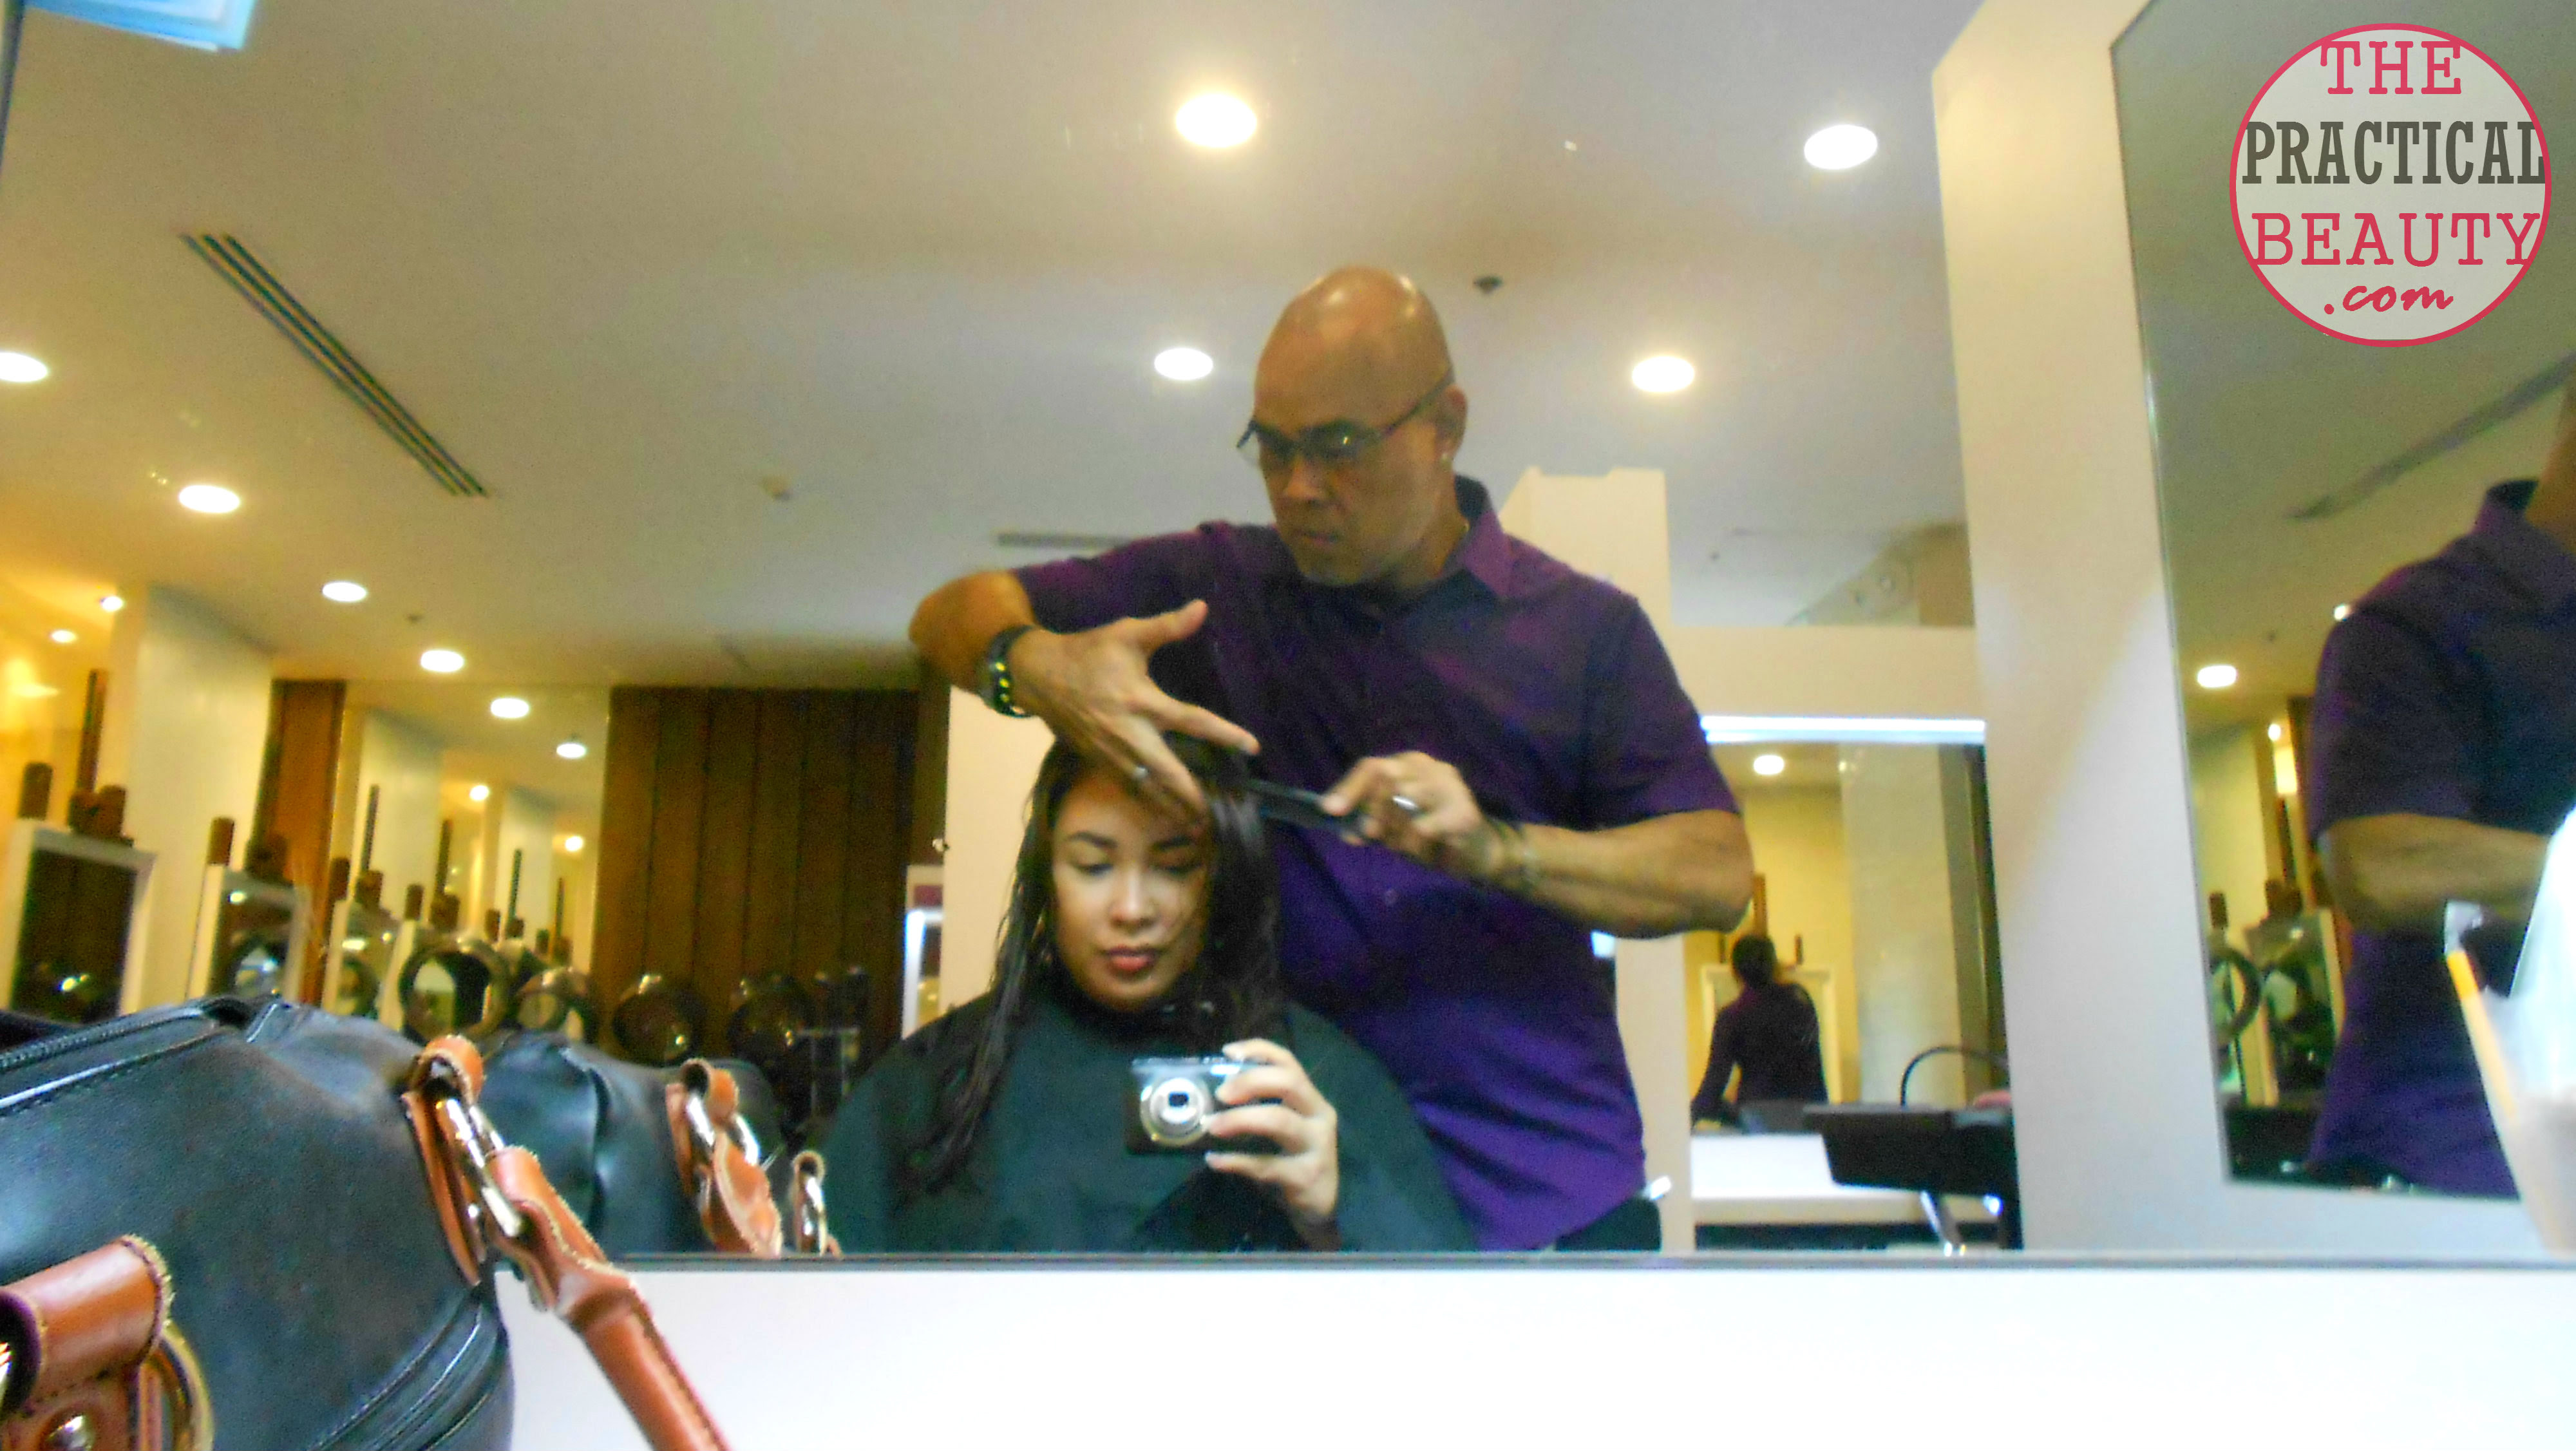 District North Point Bench  Fix  Salon A Review The